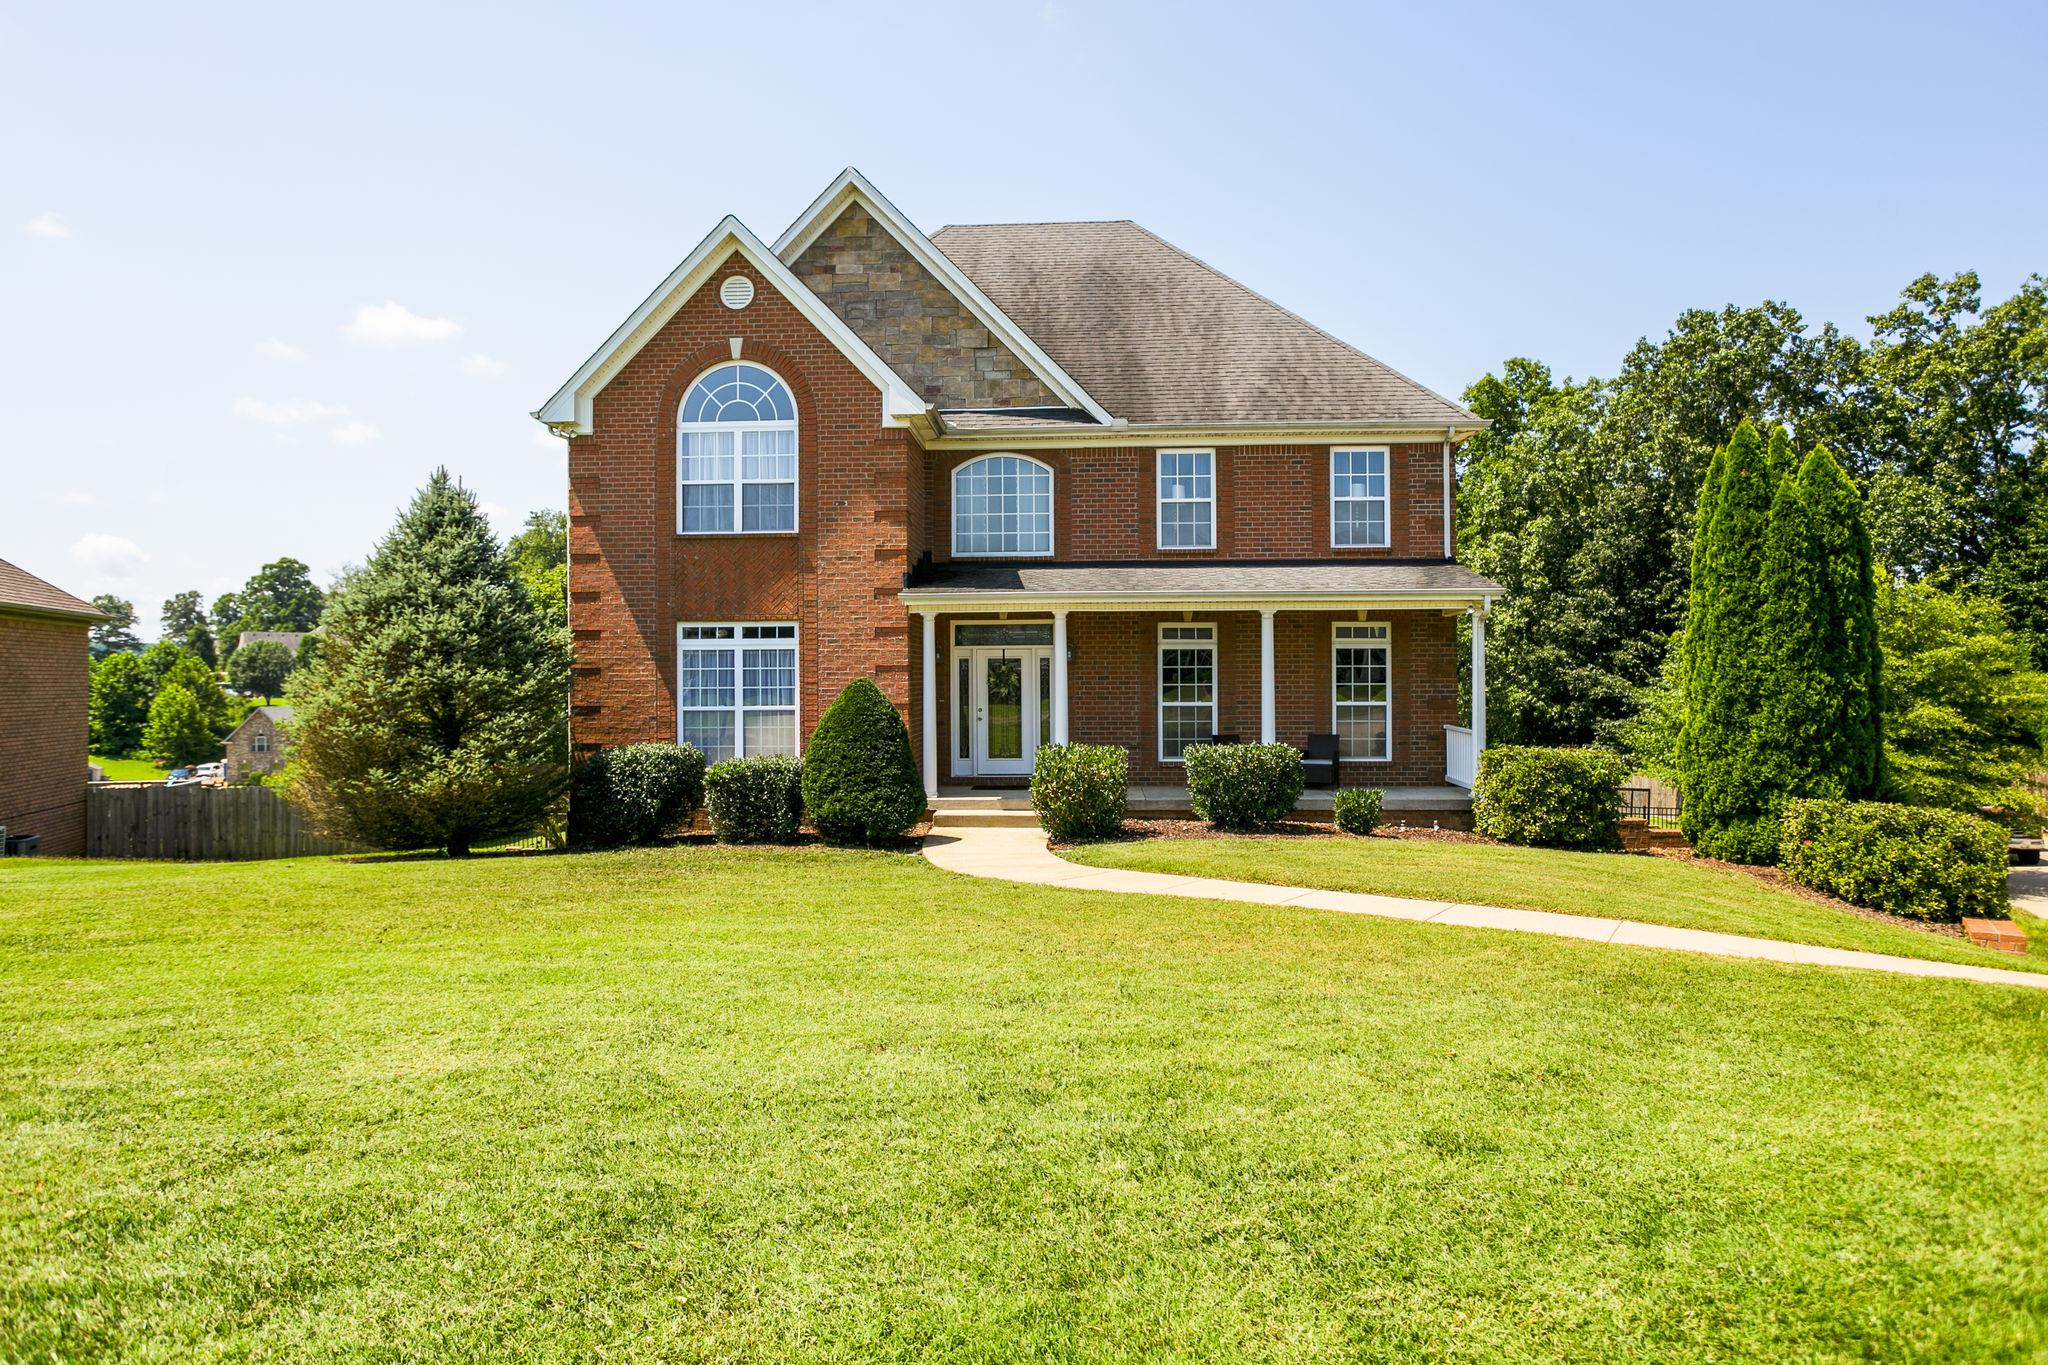 2040 Alycia Way, Pleasant View, TN 37146 - Pleasant View, TN real estate listing